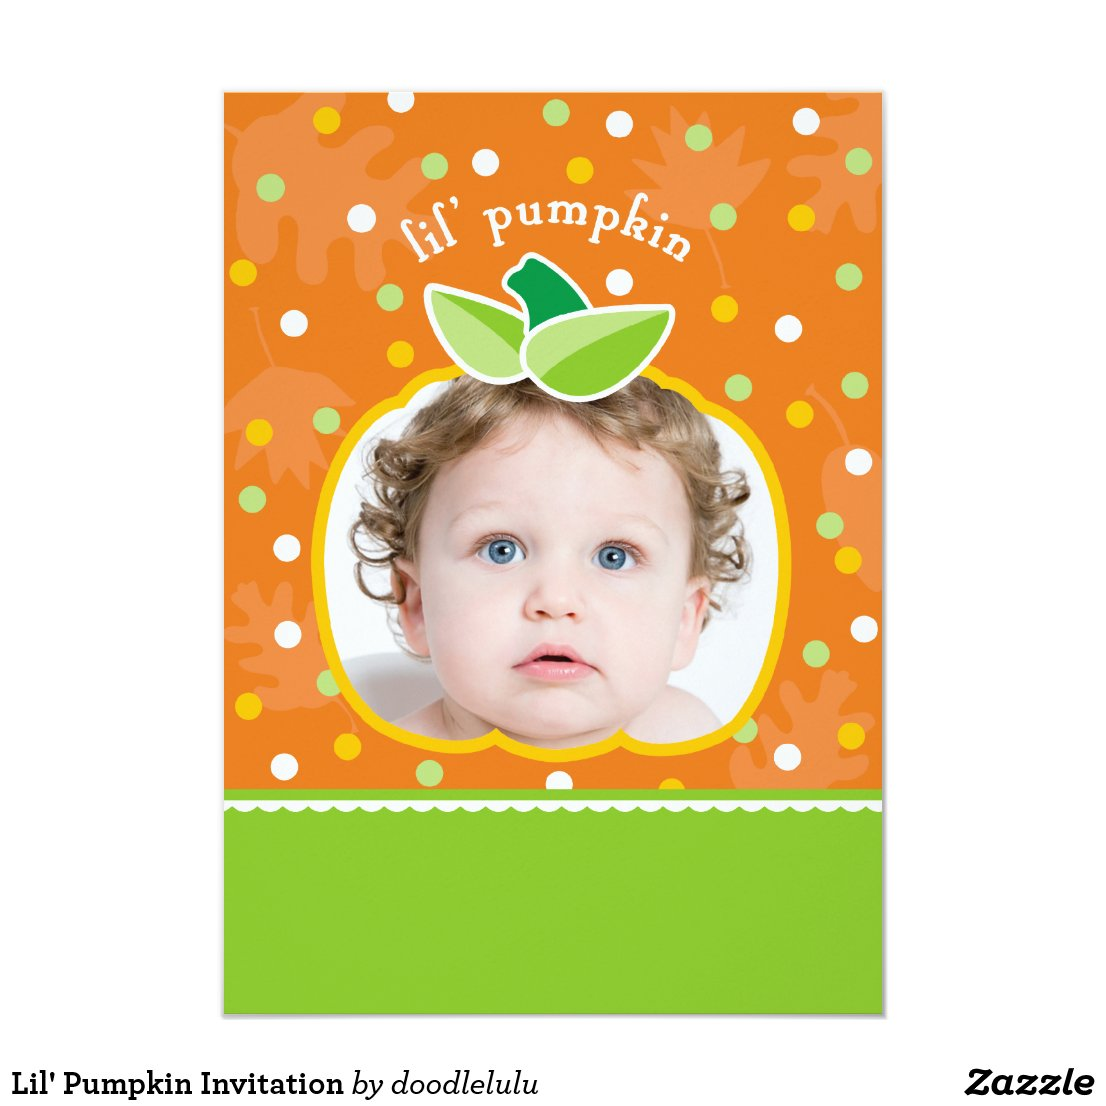 Lil' Pumpkin Invitation